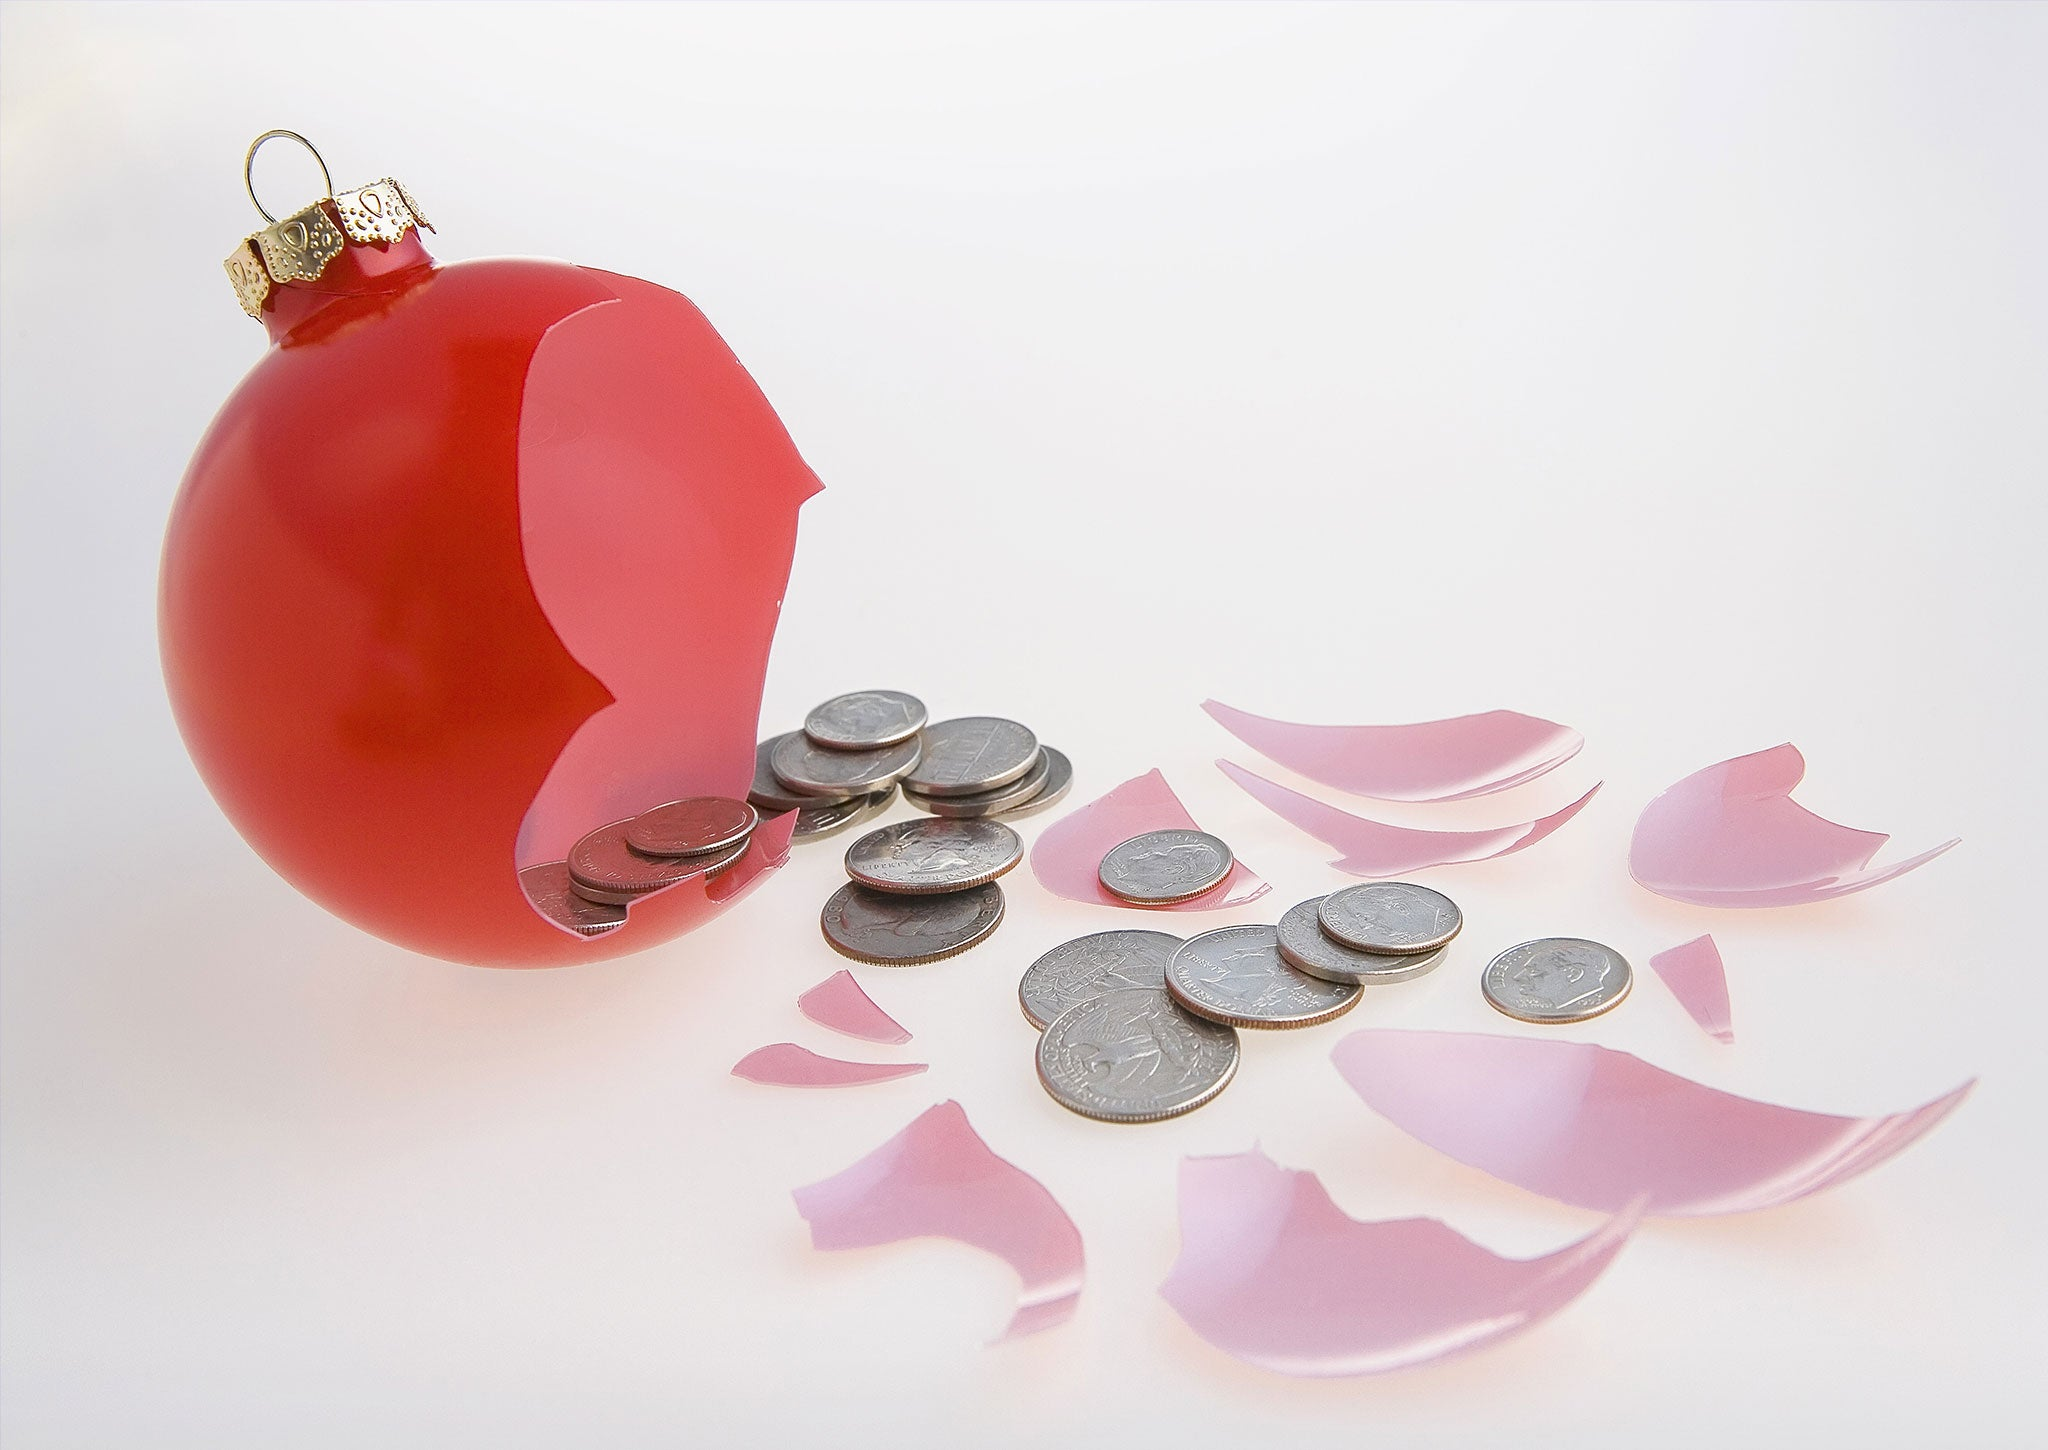 Tis The Season To Squander Taxpayers Money On Christmas Parties